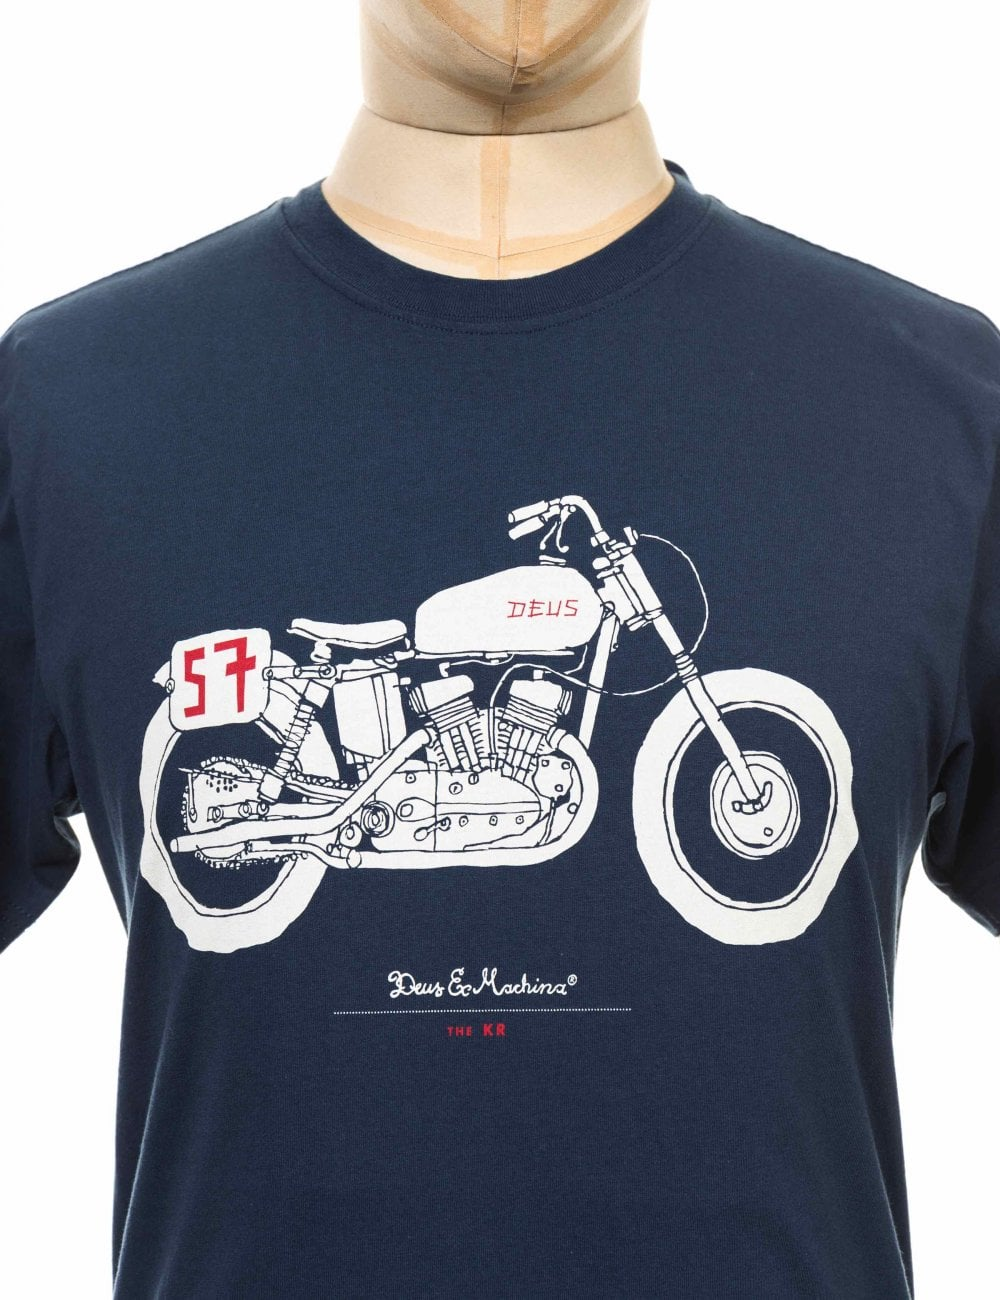 32a6392f0 The KR Tee - Navy